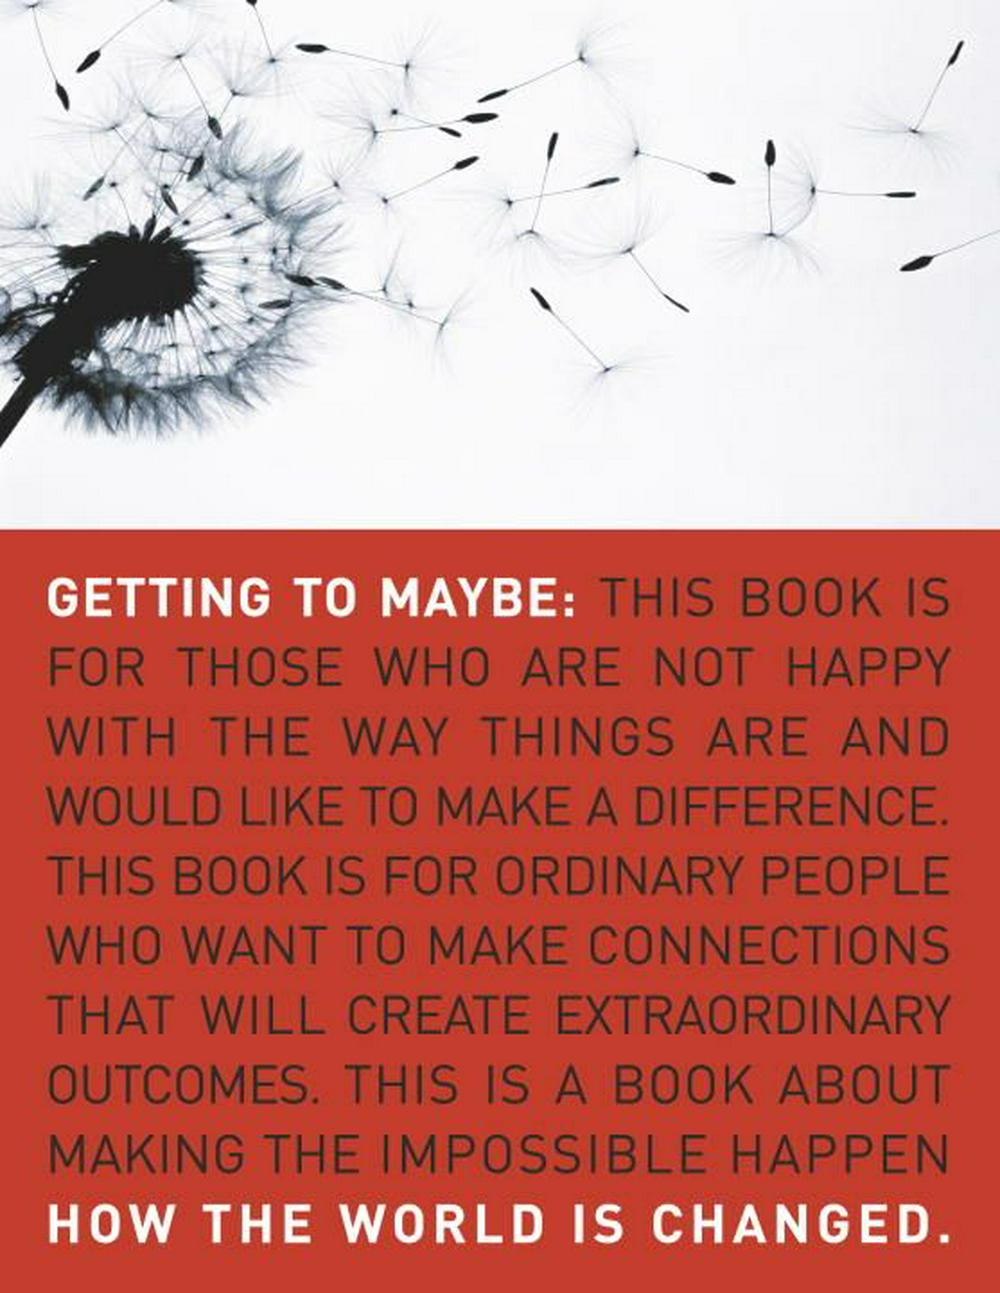 Getting to Maybe by Frances Westley, ISBN: 9780679314448